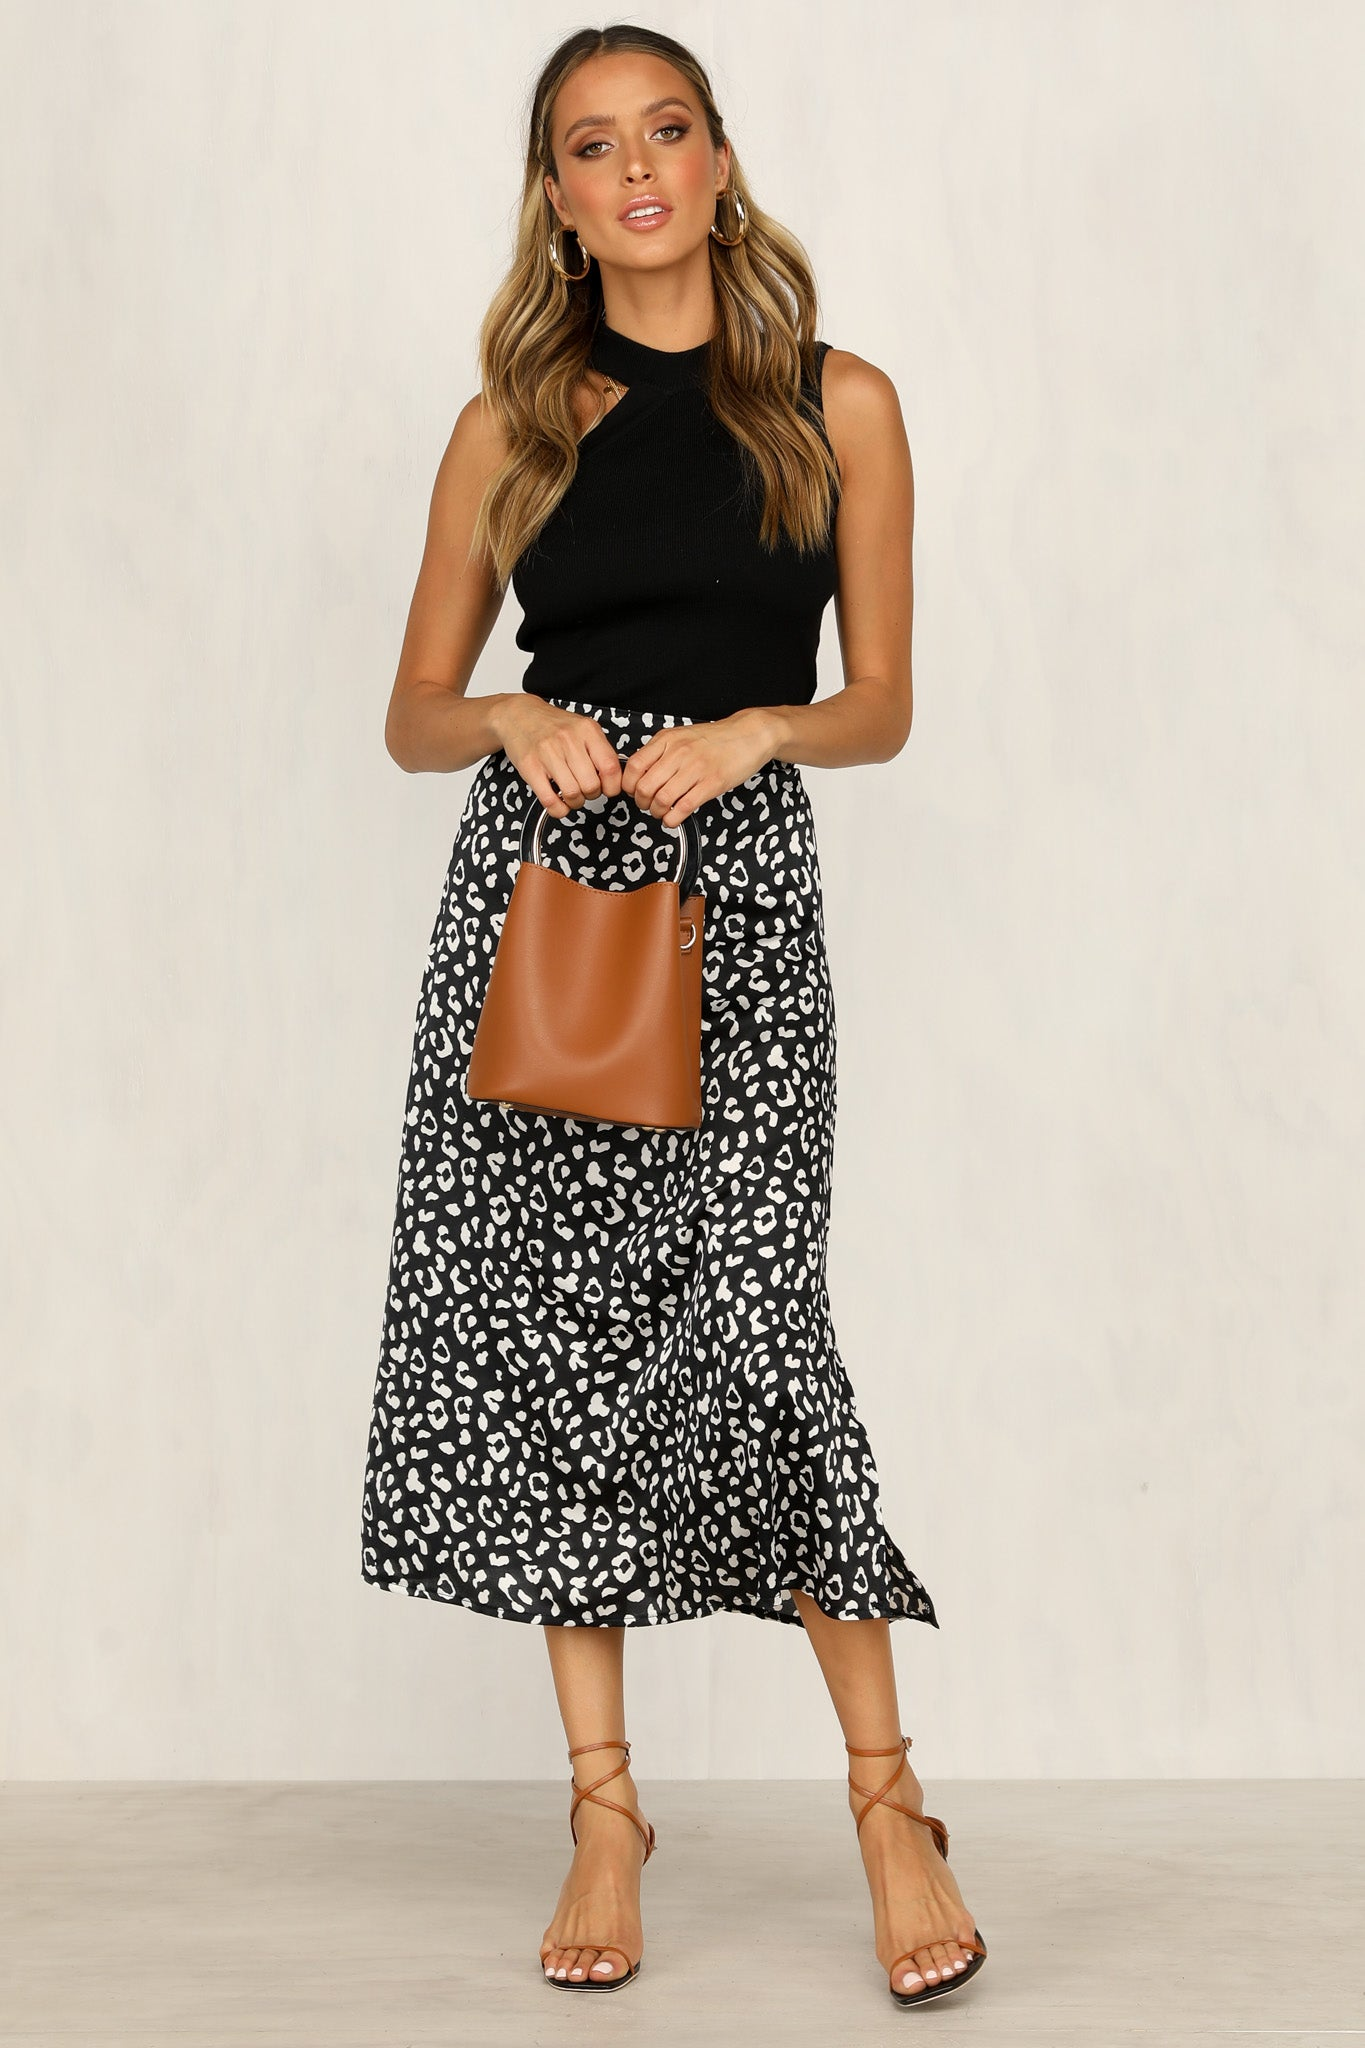 Late Night Fever Skirt